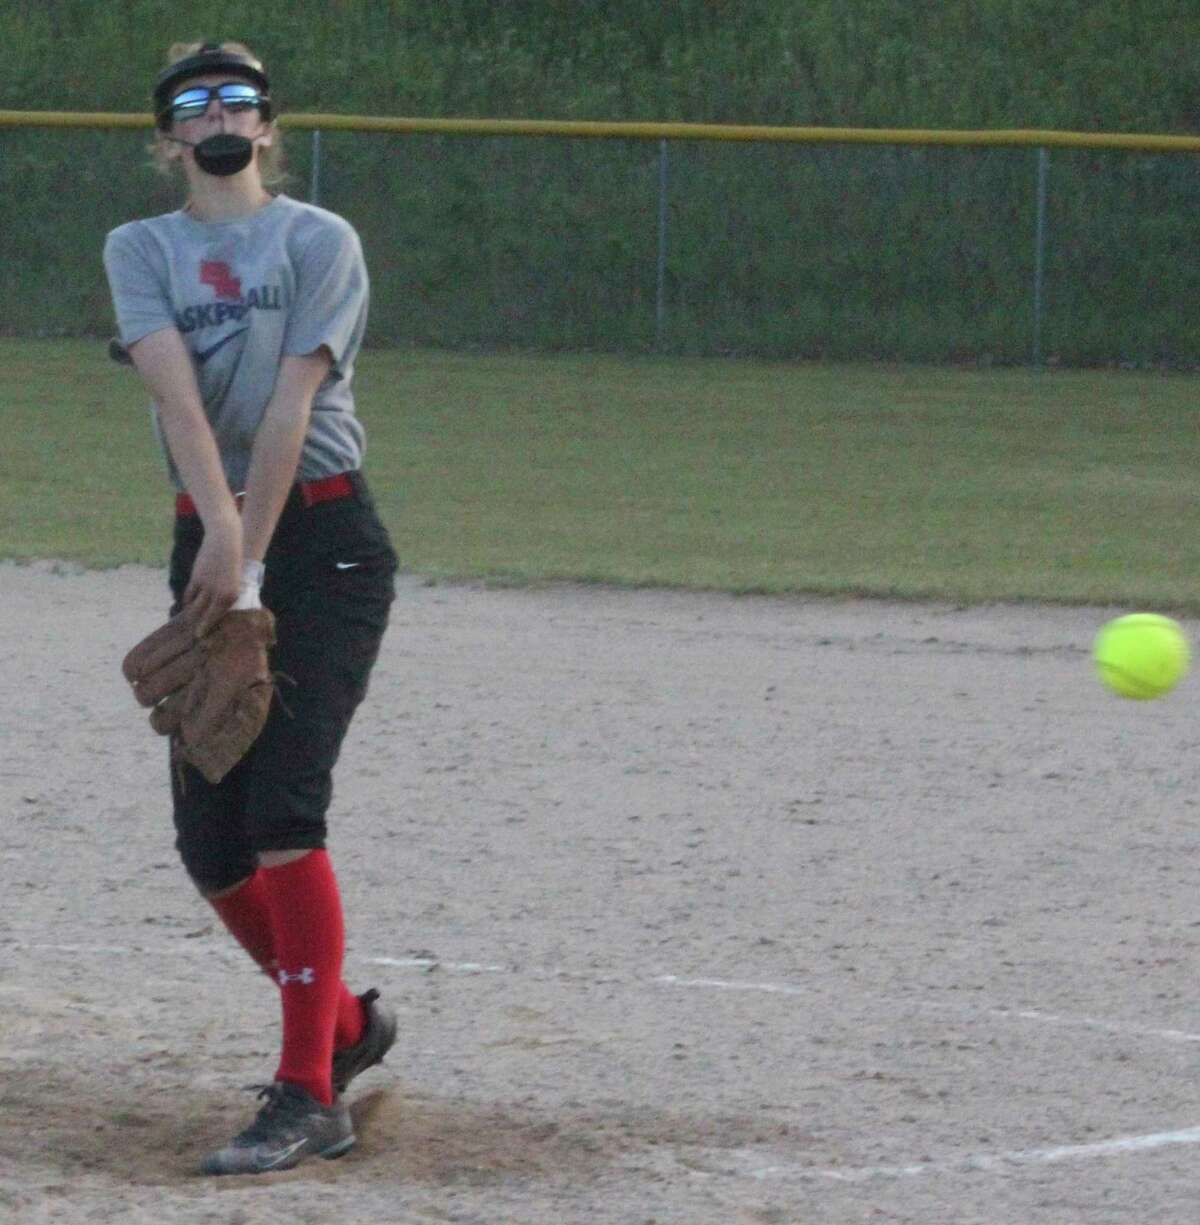 Big Rapids' Cailin Knoop delivers a pitch to the plate against Pine River on Wednesday (Pioneer photo/John Raffel)